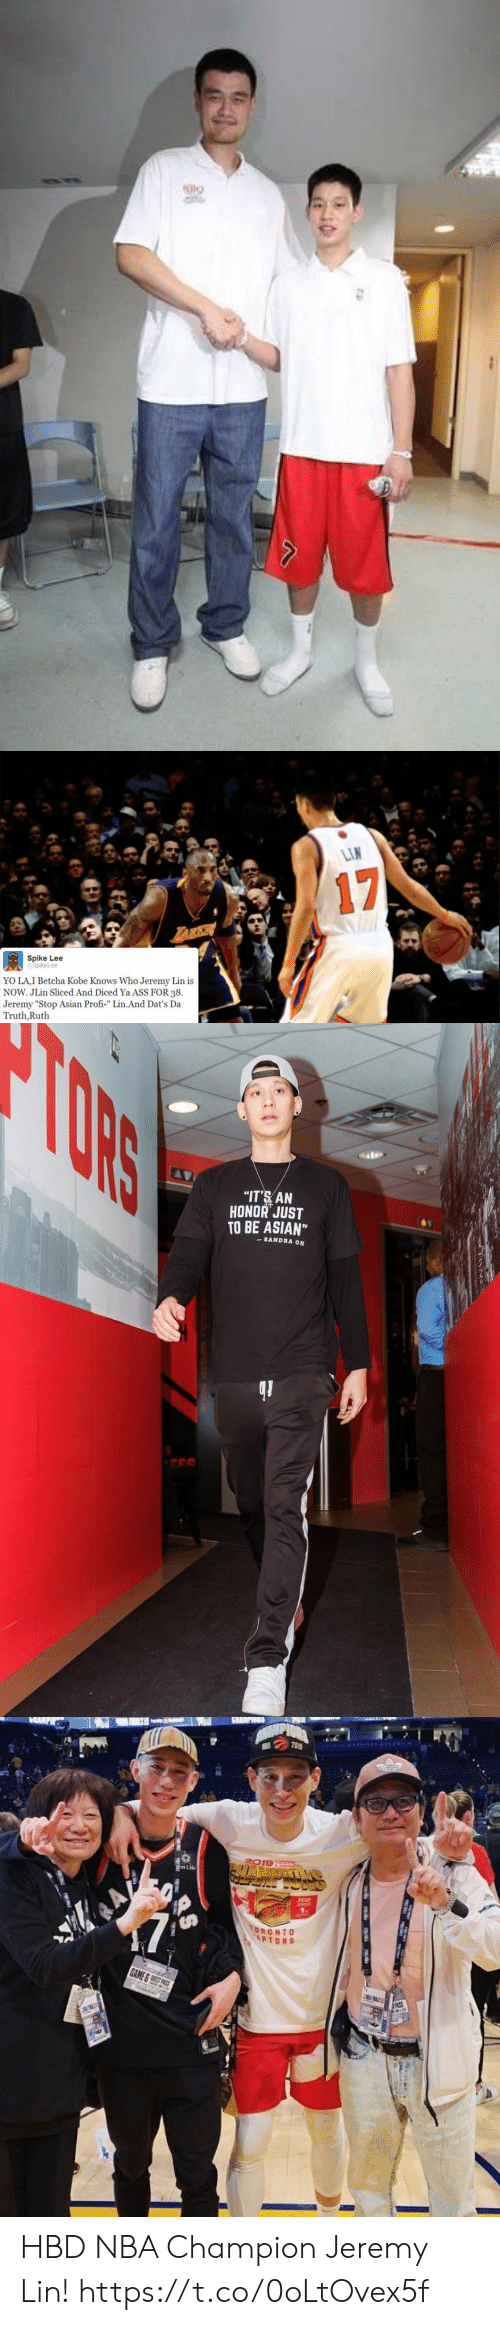 """Toronto: LIN  17  LAKEA  Spike Lee  @SpikeLee  YO LA,I Betcha Kobe Knows Who Jeremy Lin is  NOW. JLin Sliced And Diced Ya ASS FOR 38  Jeremy """"Stop Asian Profi-"""" Lin.And Dat's Da  Truth,Ruth  HB   TORS  """"IT'S AN  HONOR JUST  TO BE ASIAN""""  SANDRA OH   PIDNA  3019  প  TORONTO  APTORS  GAME &S S  APASS HBD NBA Champion Jeremy Lin! https://t.co/0oLtOvex5f"""